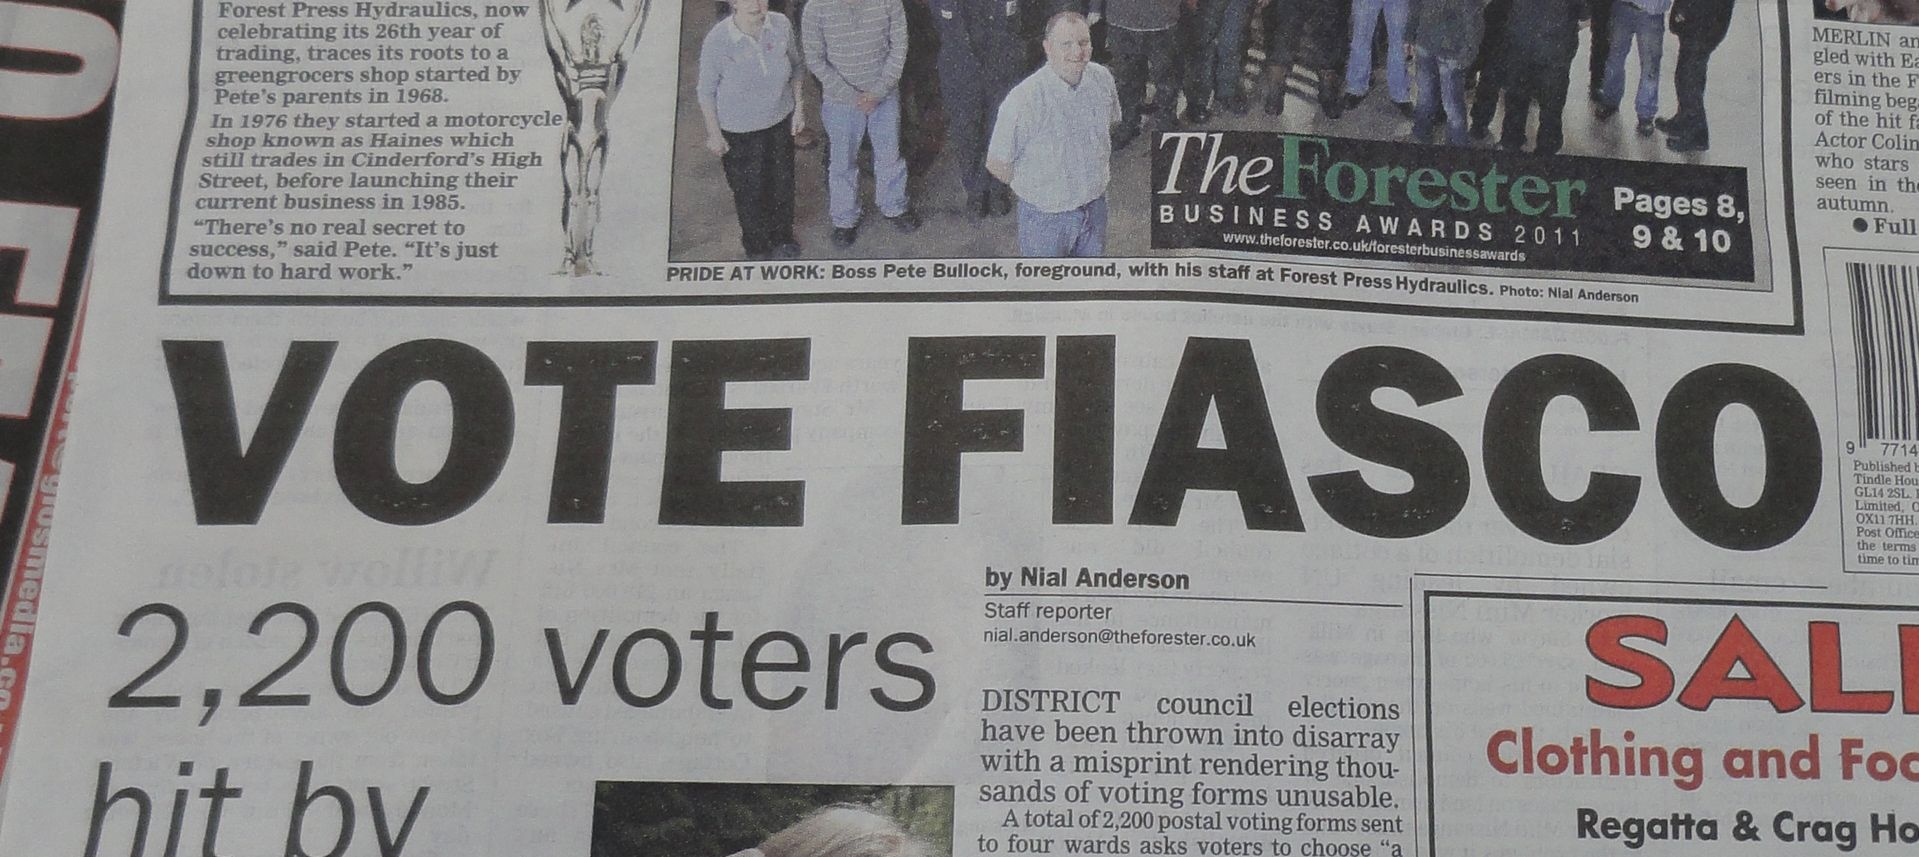 Forest of Dean - Vote Fiasco - headline from The Forester